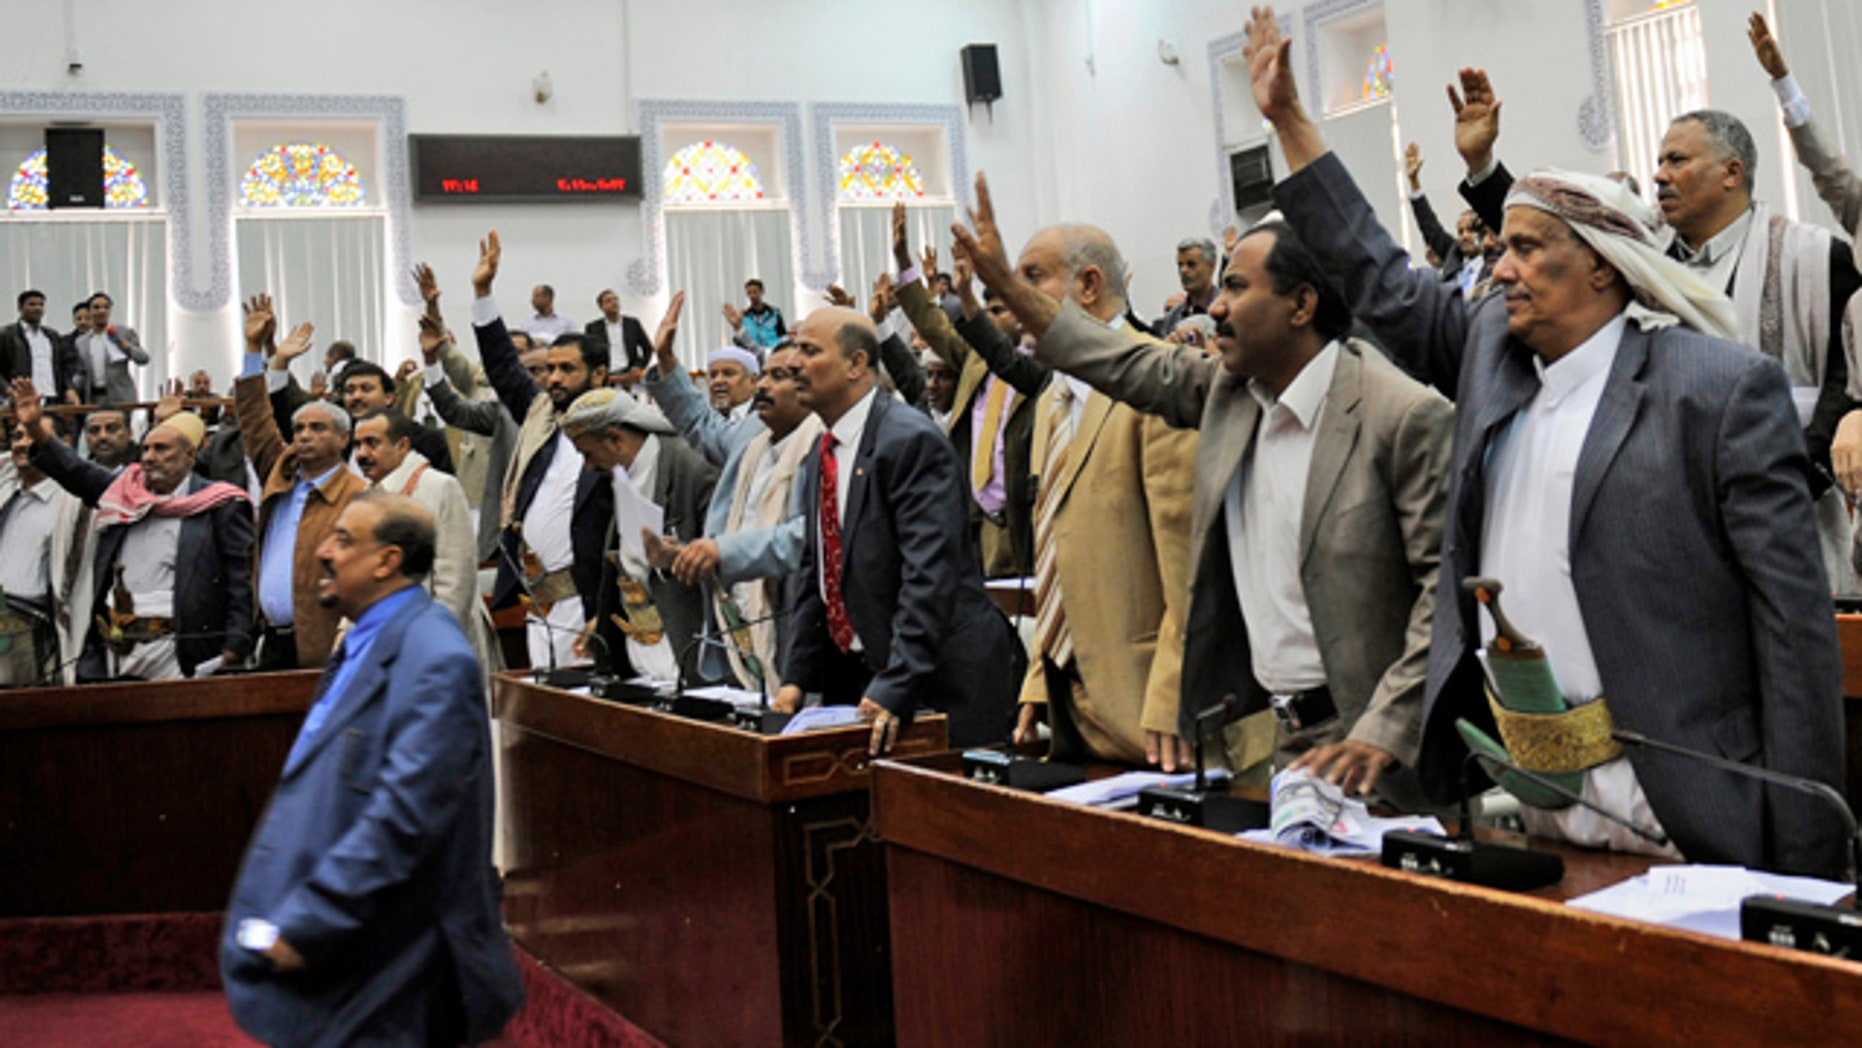 March 23: Members of the Yemeni parliament raise their hands as they vote in favor of the state of emergency during a session in Sanaa, Yemen.